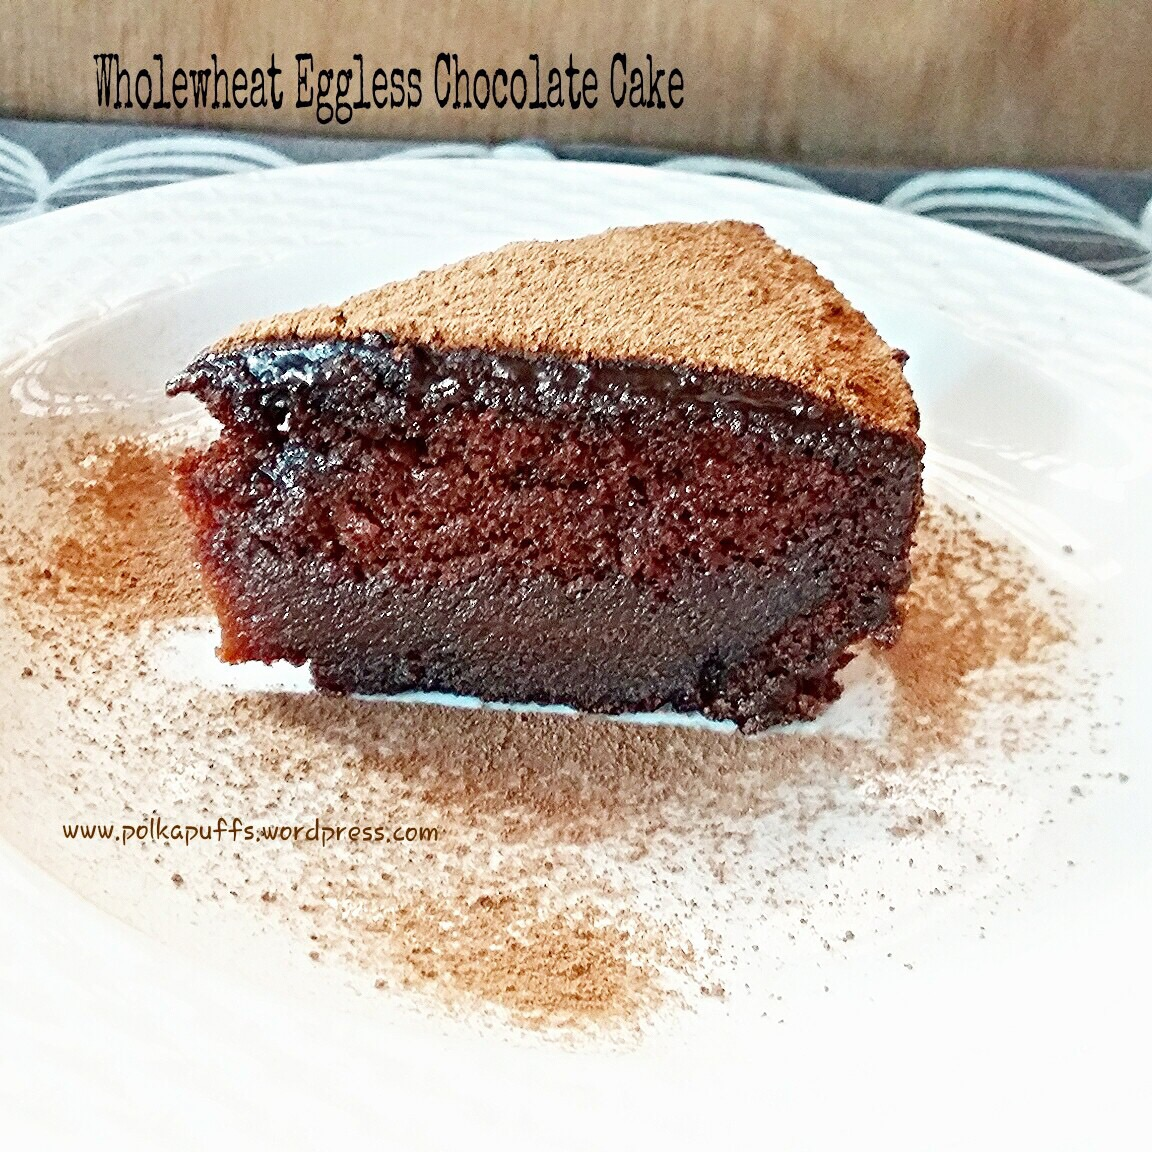 Wholewheat Chocolate Cake Basic Eggless Sponge Recipe With Frosting